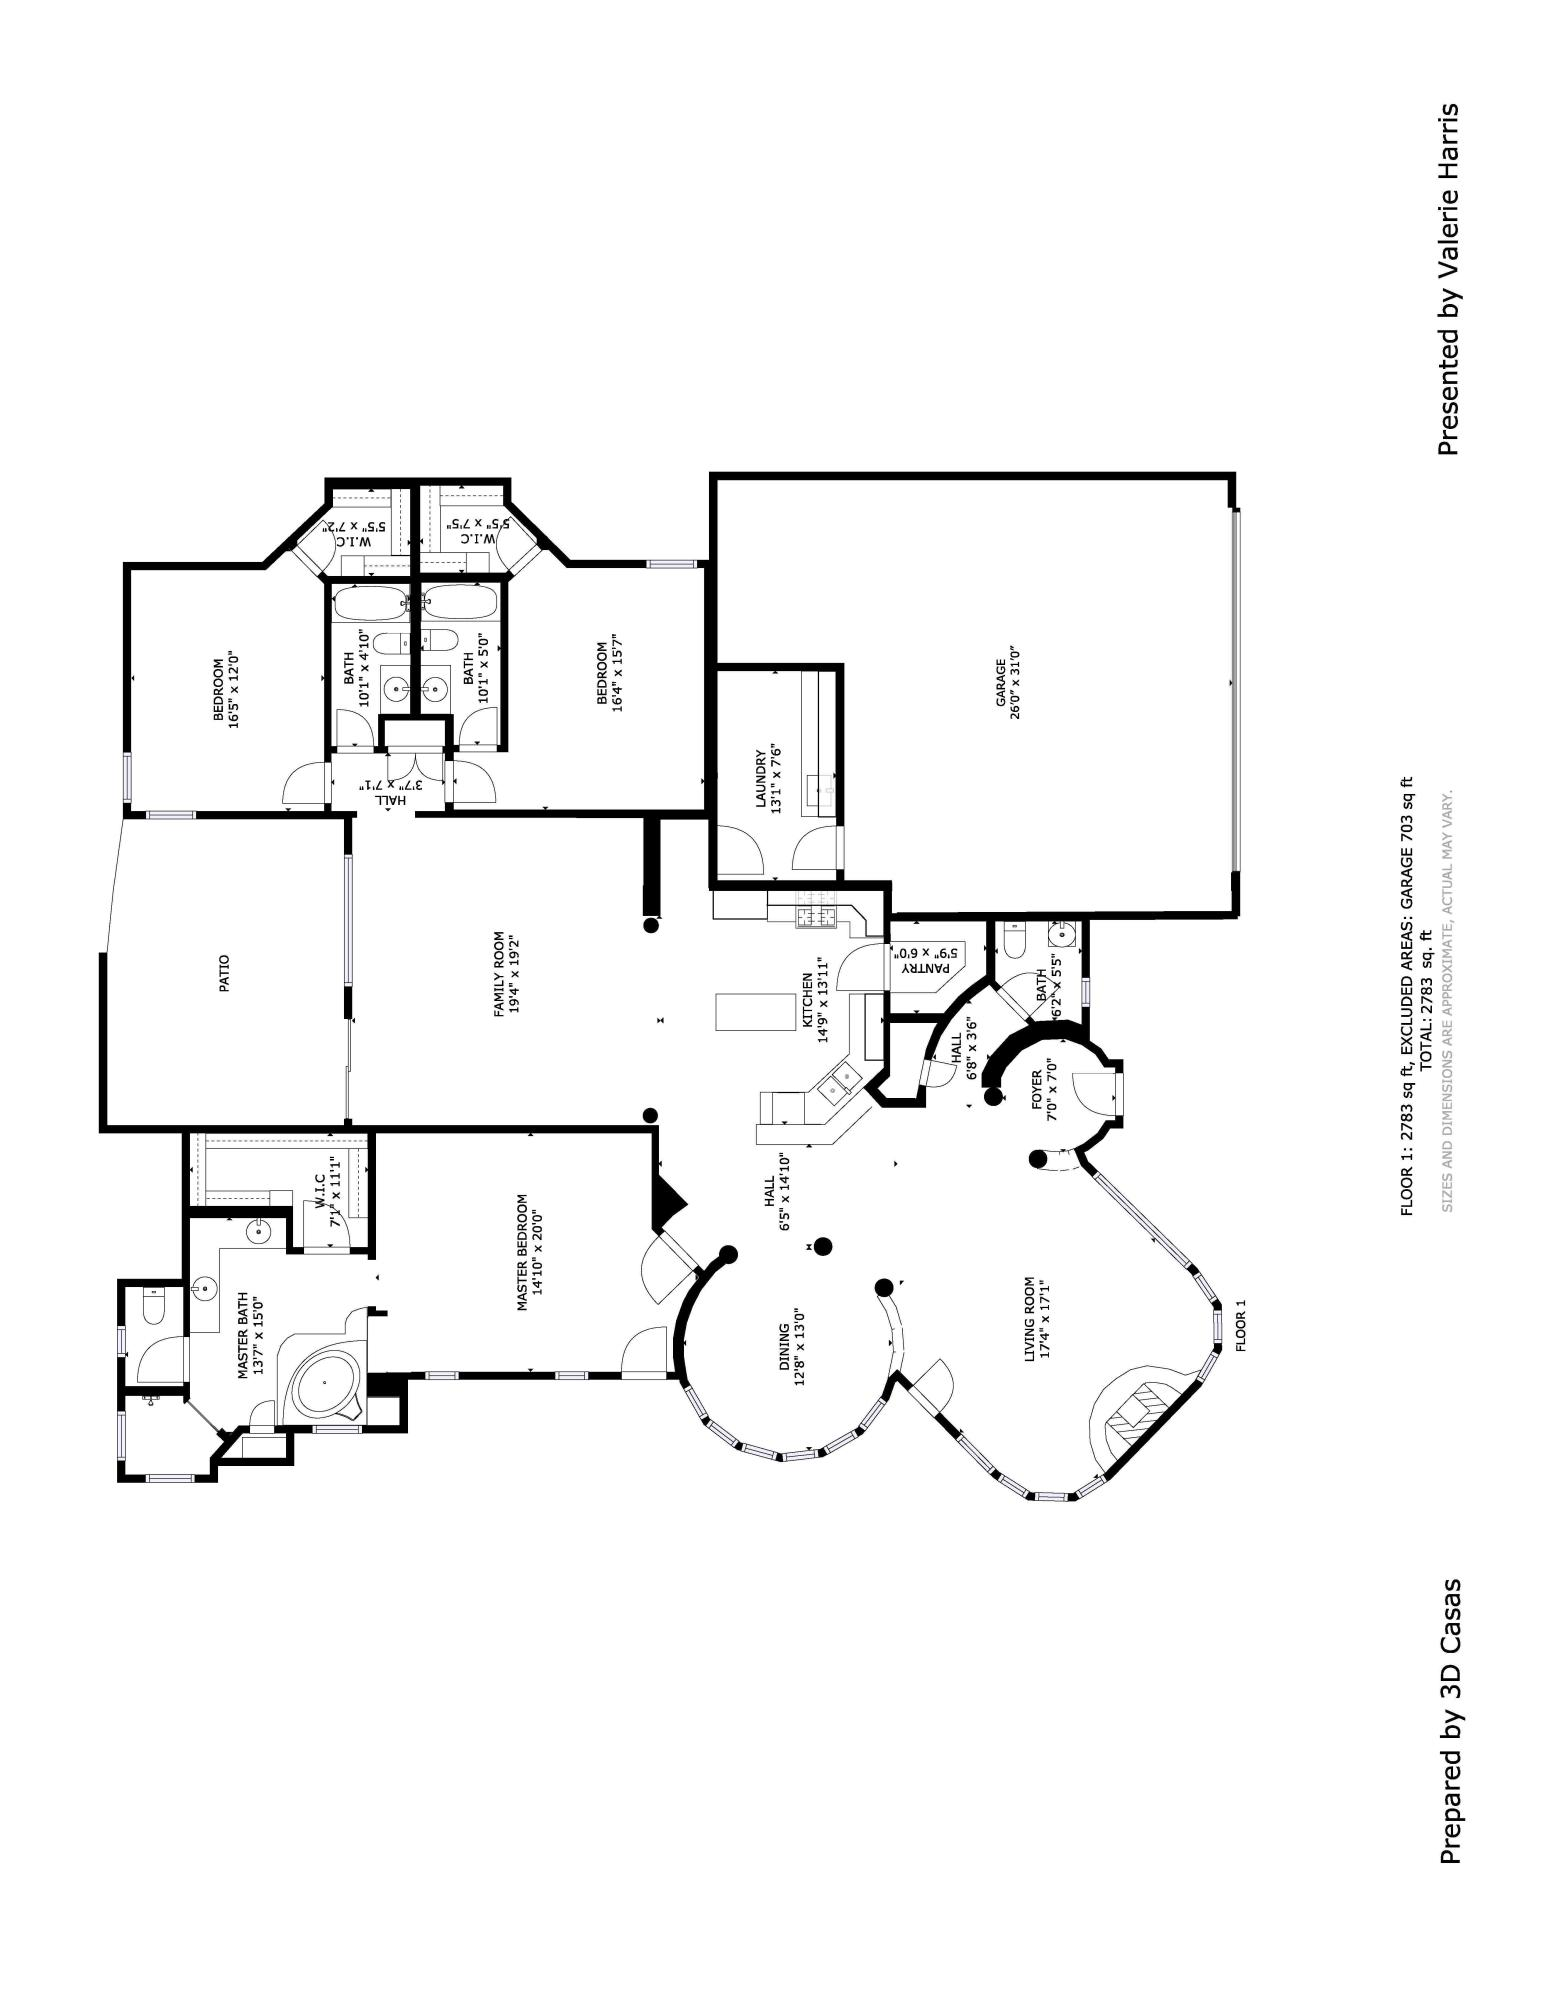 American Quality Builders is proposing a New Construction with an open floor plan. 2712 Sqft, Featuring 3 bedrooms, 4 Baths, Oversized Finished Garage w/ 220v outlet, Covered Porch in back, Granite Counter Tops, Waterproof Vinyl Plank Flooring throughout, with possible back yard access. Views of the Sandia Mountains, Standard Quality Stove, Refrigerator, Microwave and Dishwasher. Construction can begin with a Construction Loan. American Quality Builders has many building plans and can Build to Suit on this lot or your lot (price & amenities may change). Contact broker for more information.